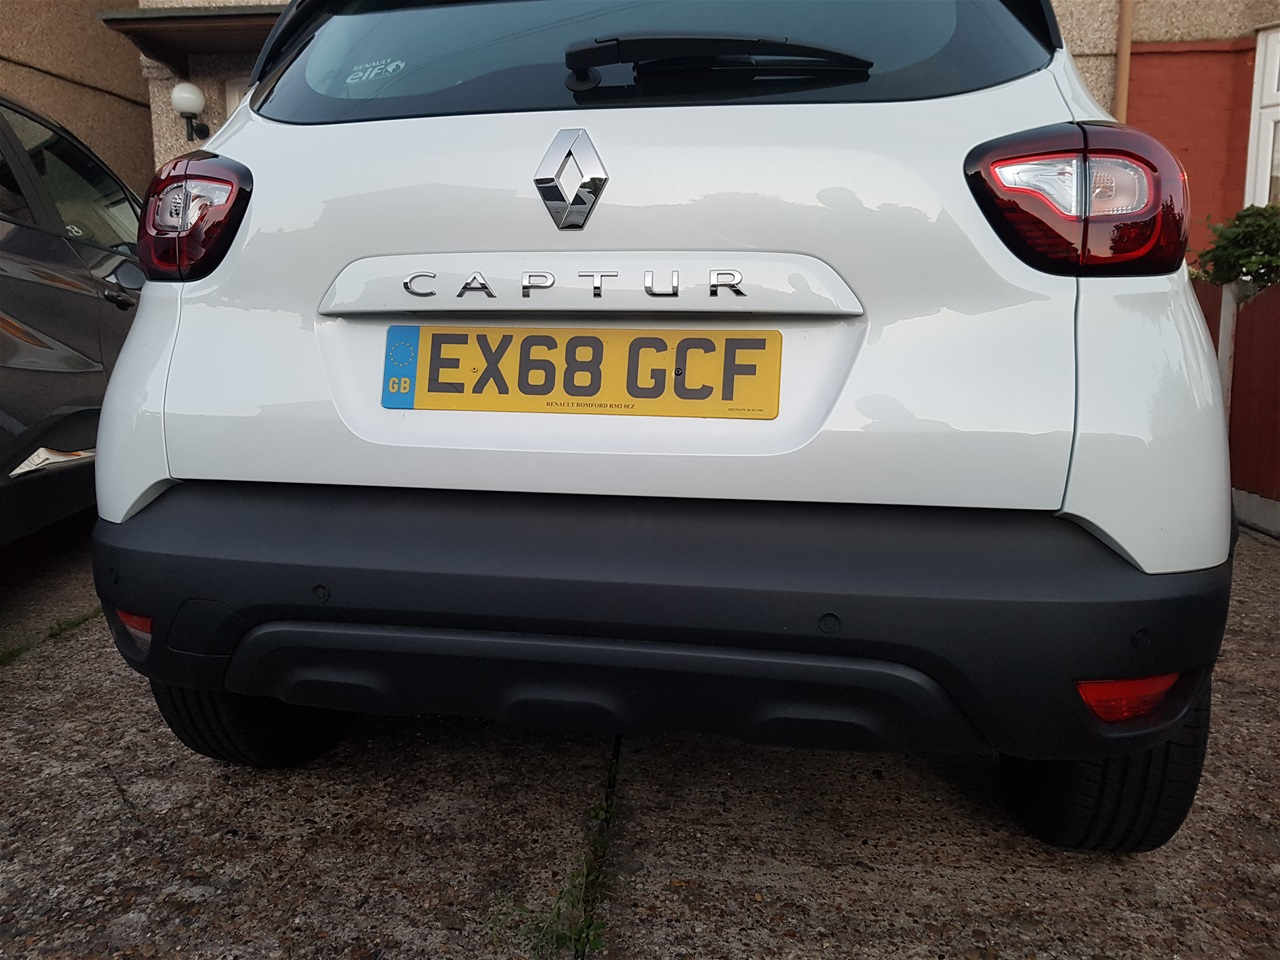 Renault Captur rear parking sensors